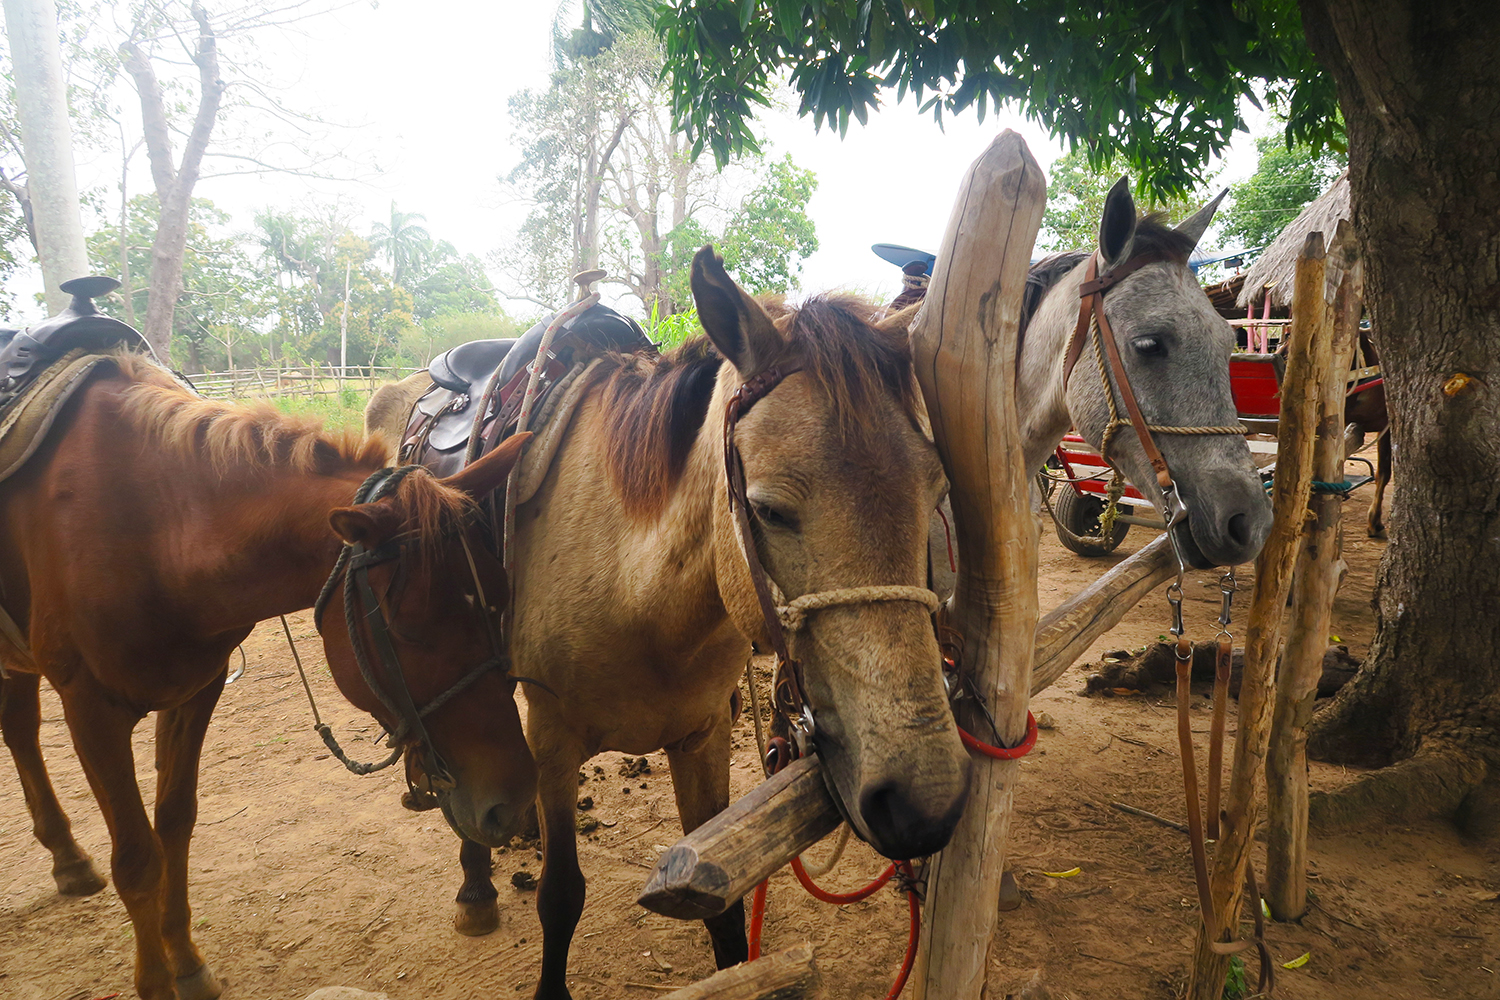 The Horse Ride From Hell in Trinidad, Cuba